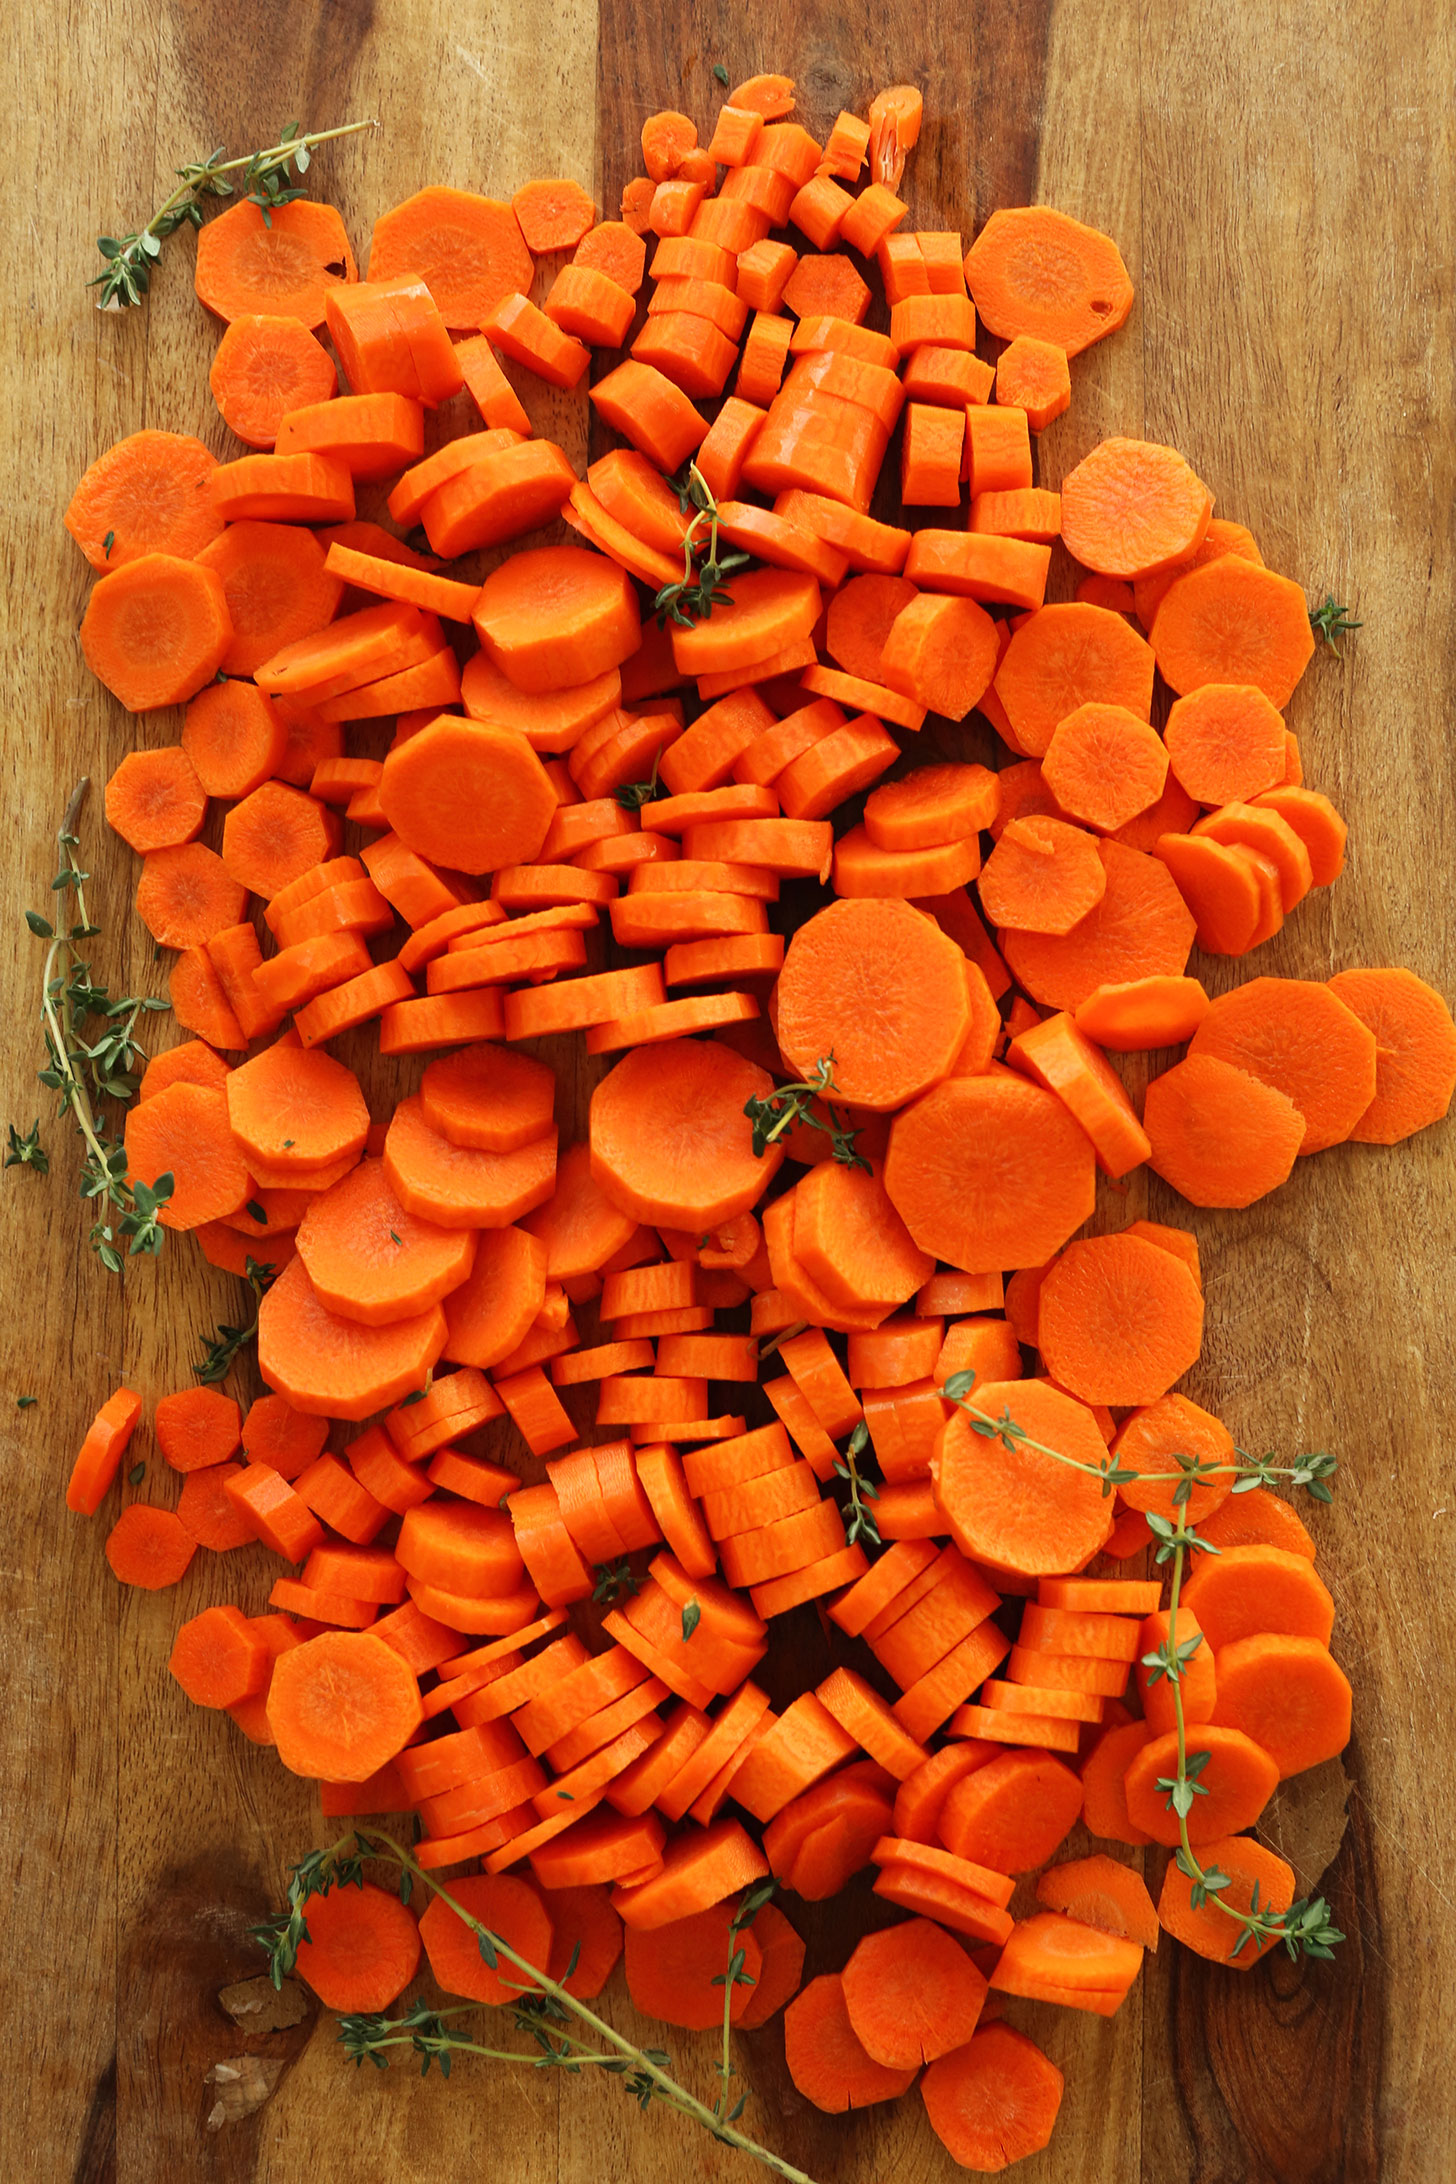 Peeled and sliced carrots surrounded by sprigs of fresh thyme